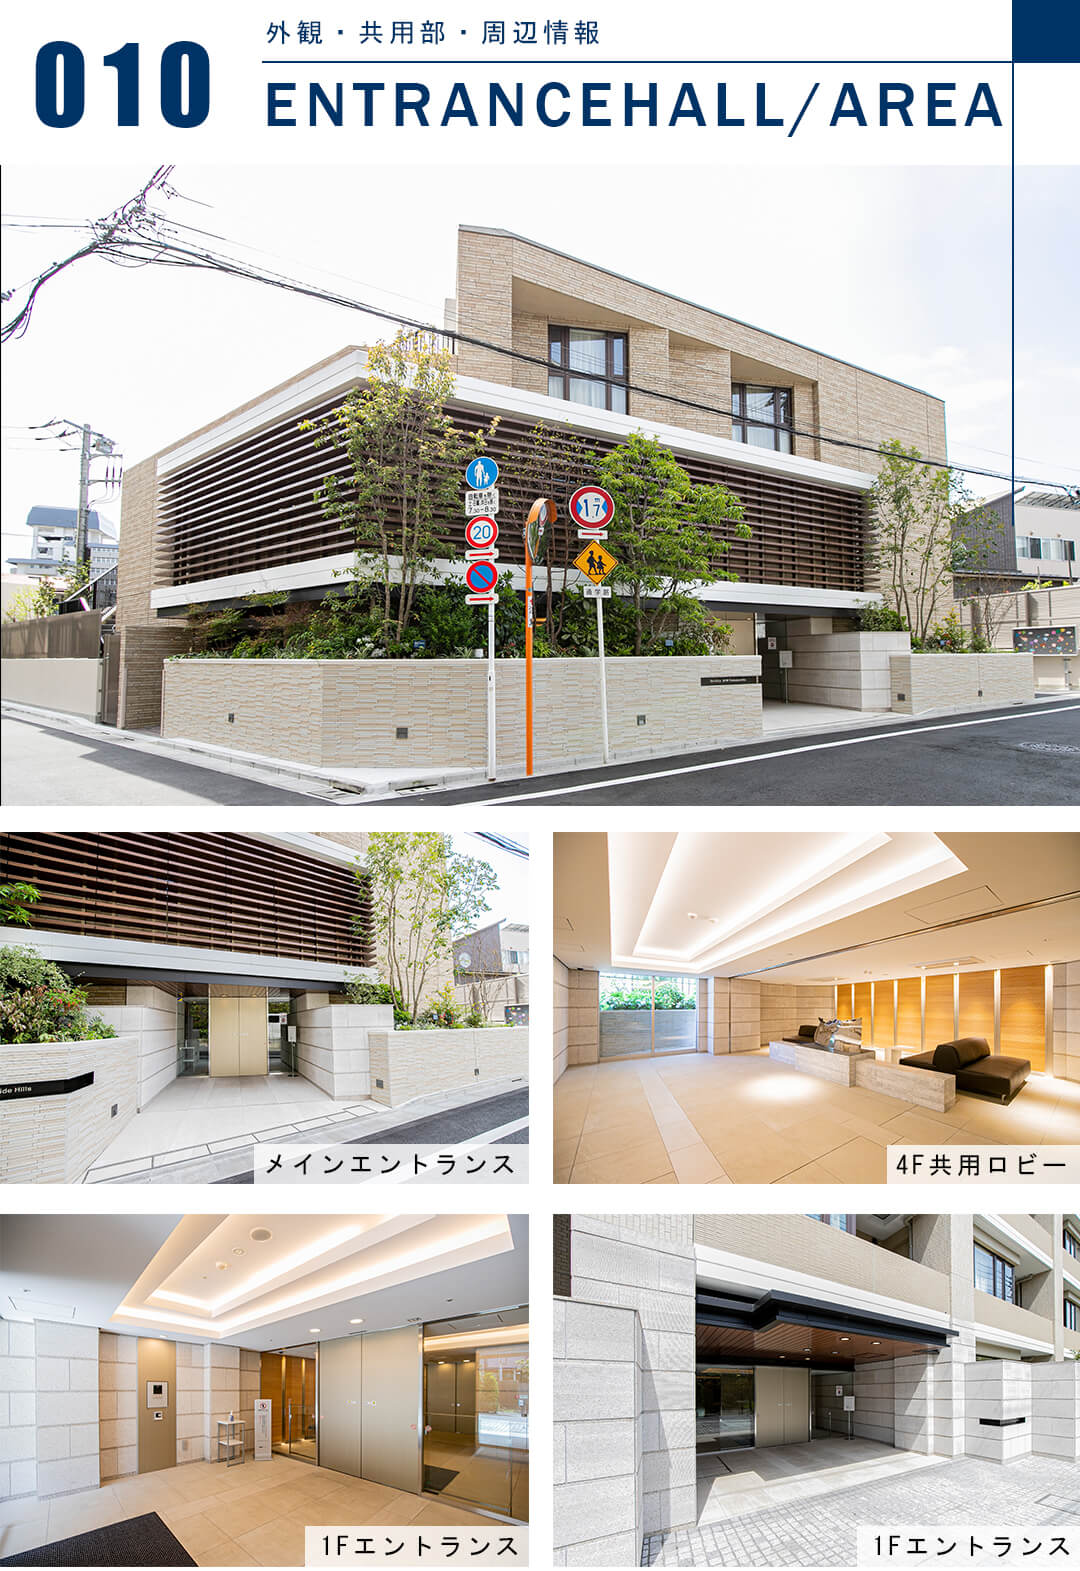 Brillia 東中野 Parkside Hillsの外観と共用部と周辺情報